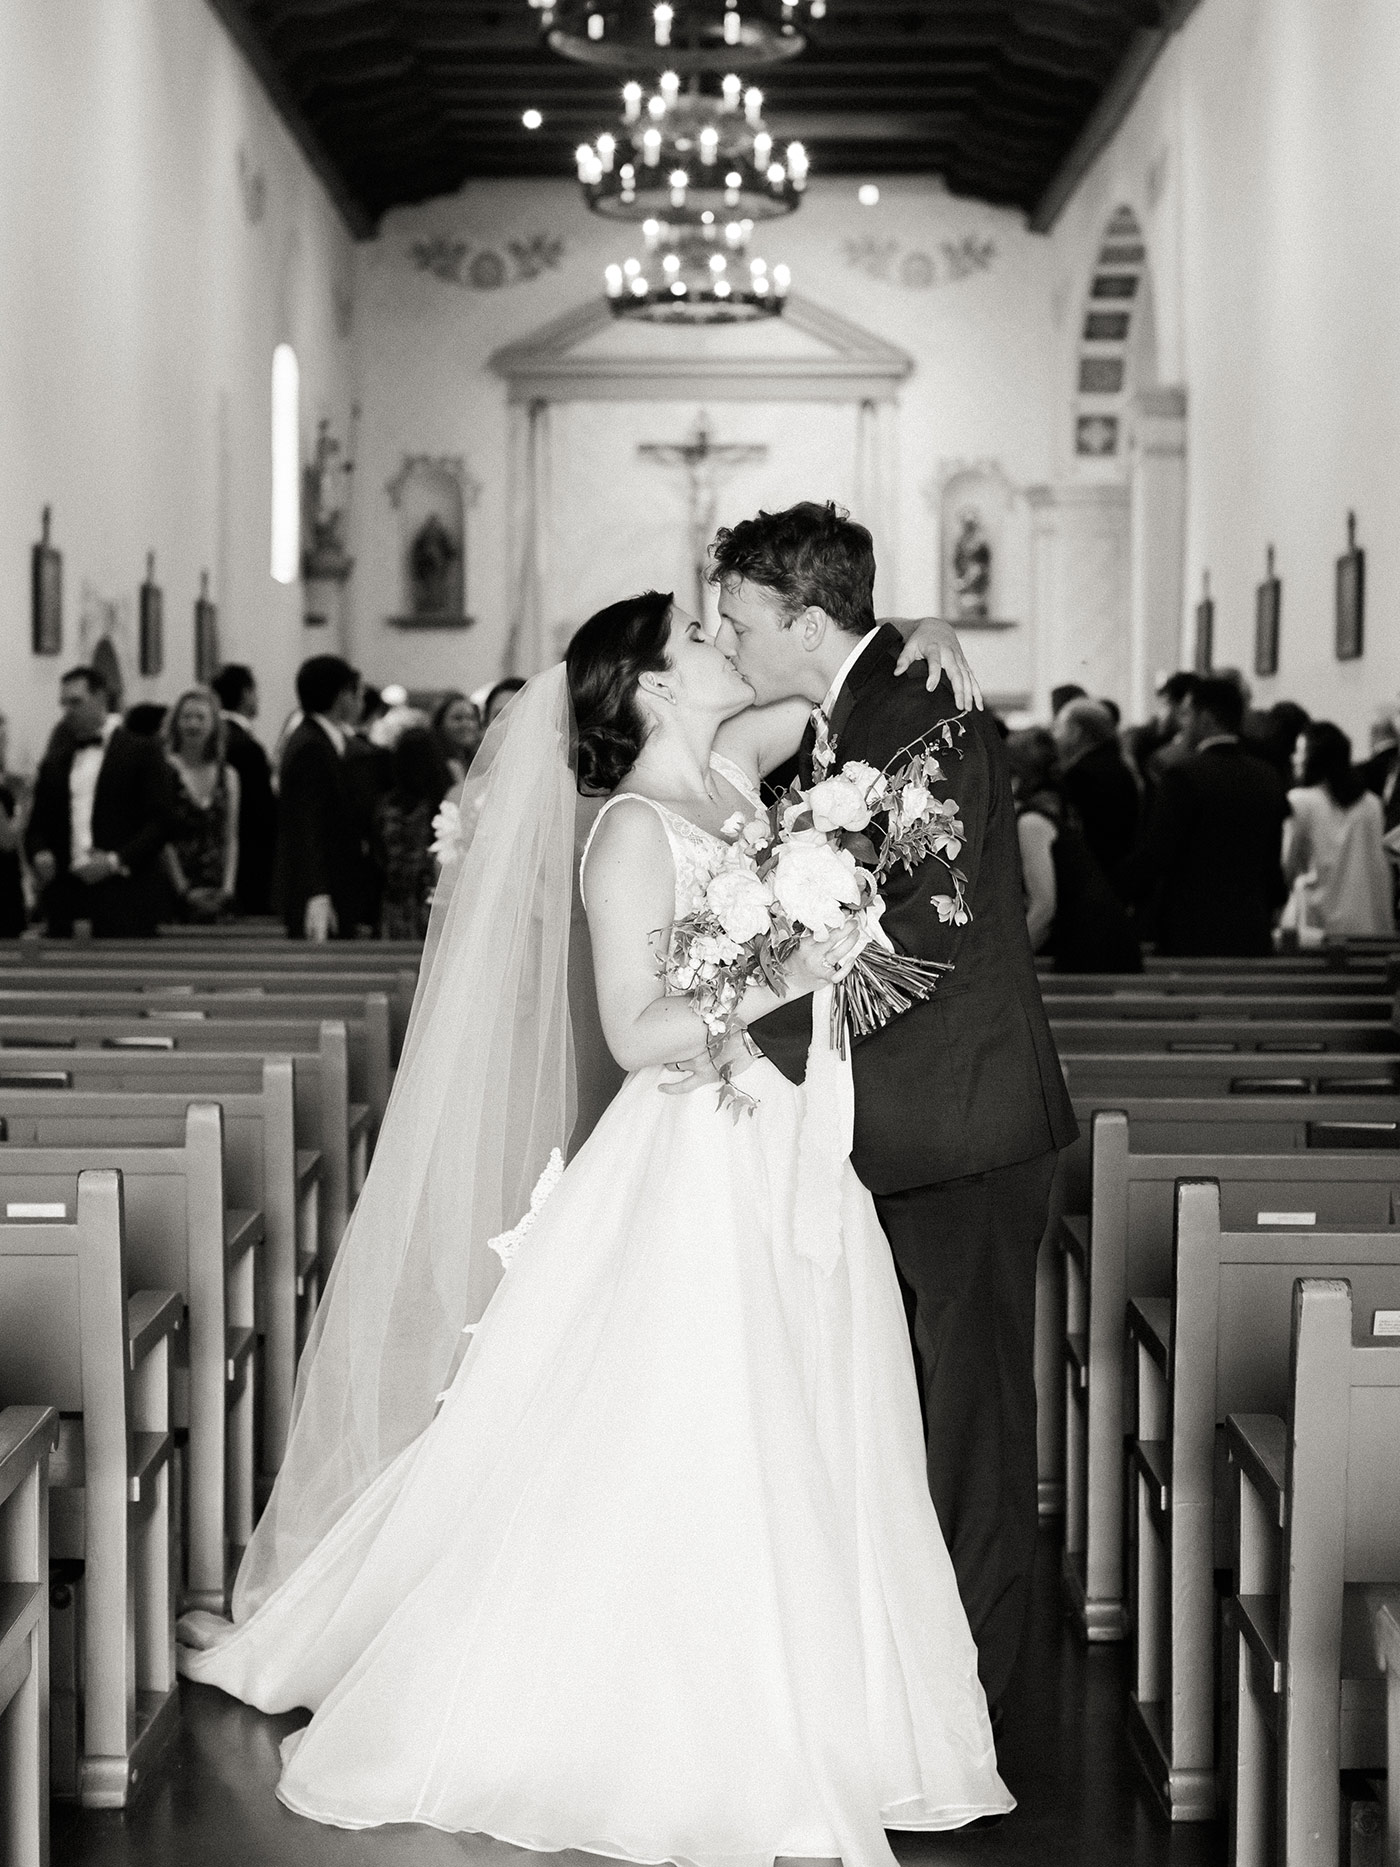 San Luis Obispo Mission Wedding photographed by Ashley Ludaescher Photography